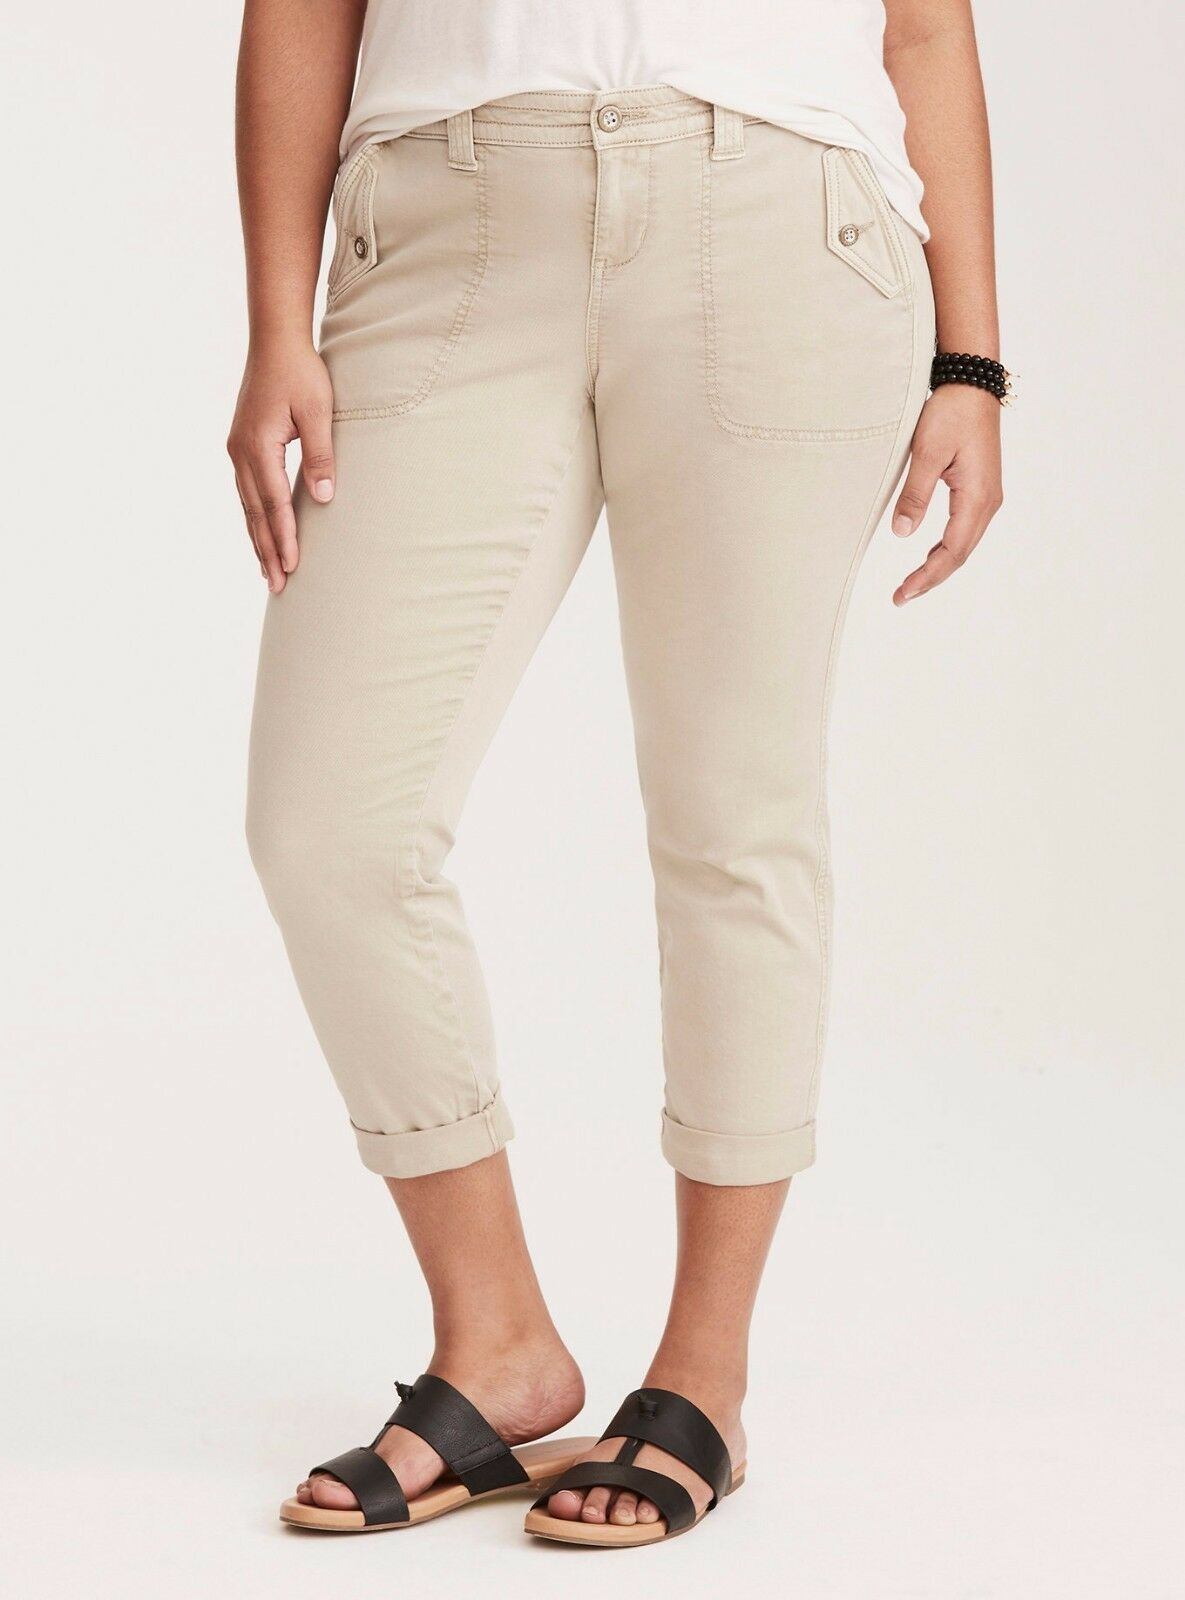 Torrid Stretchy Cropped Military Pants Stone Wash 14